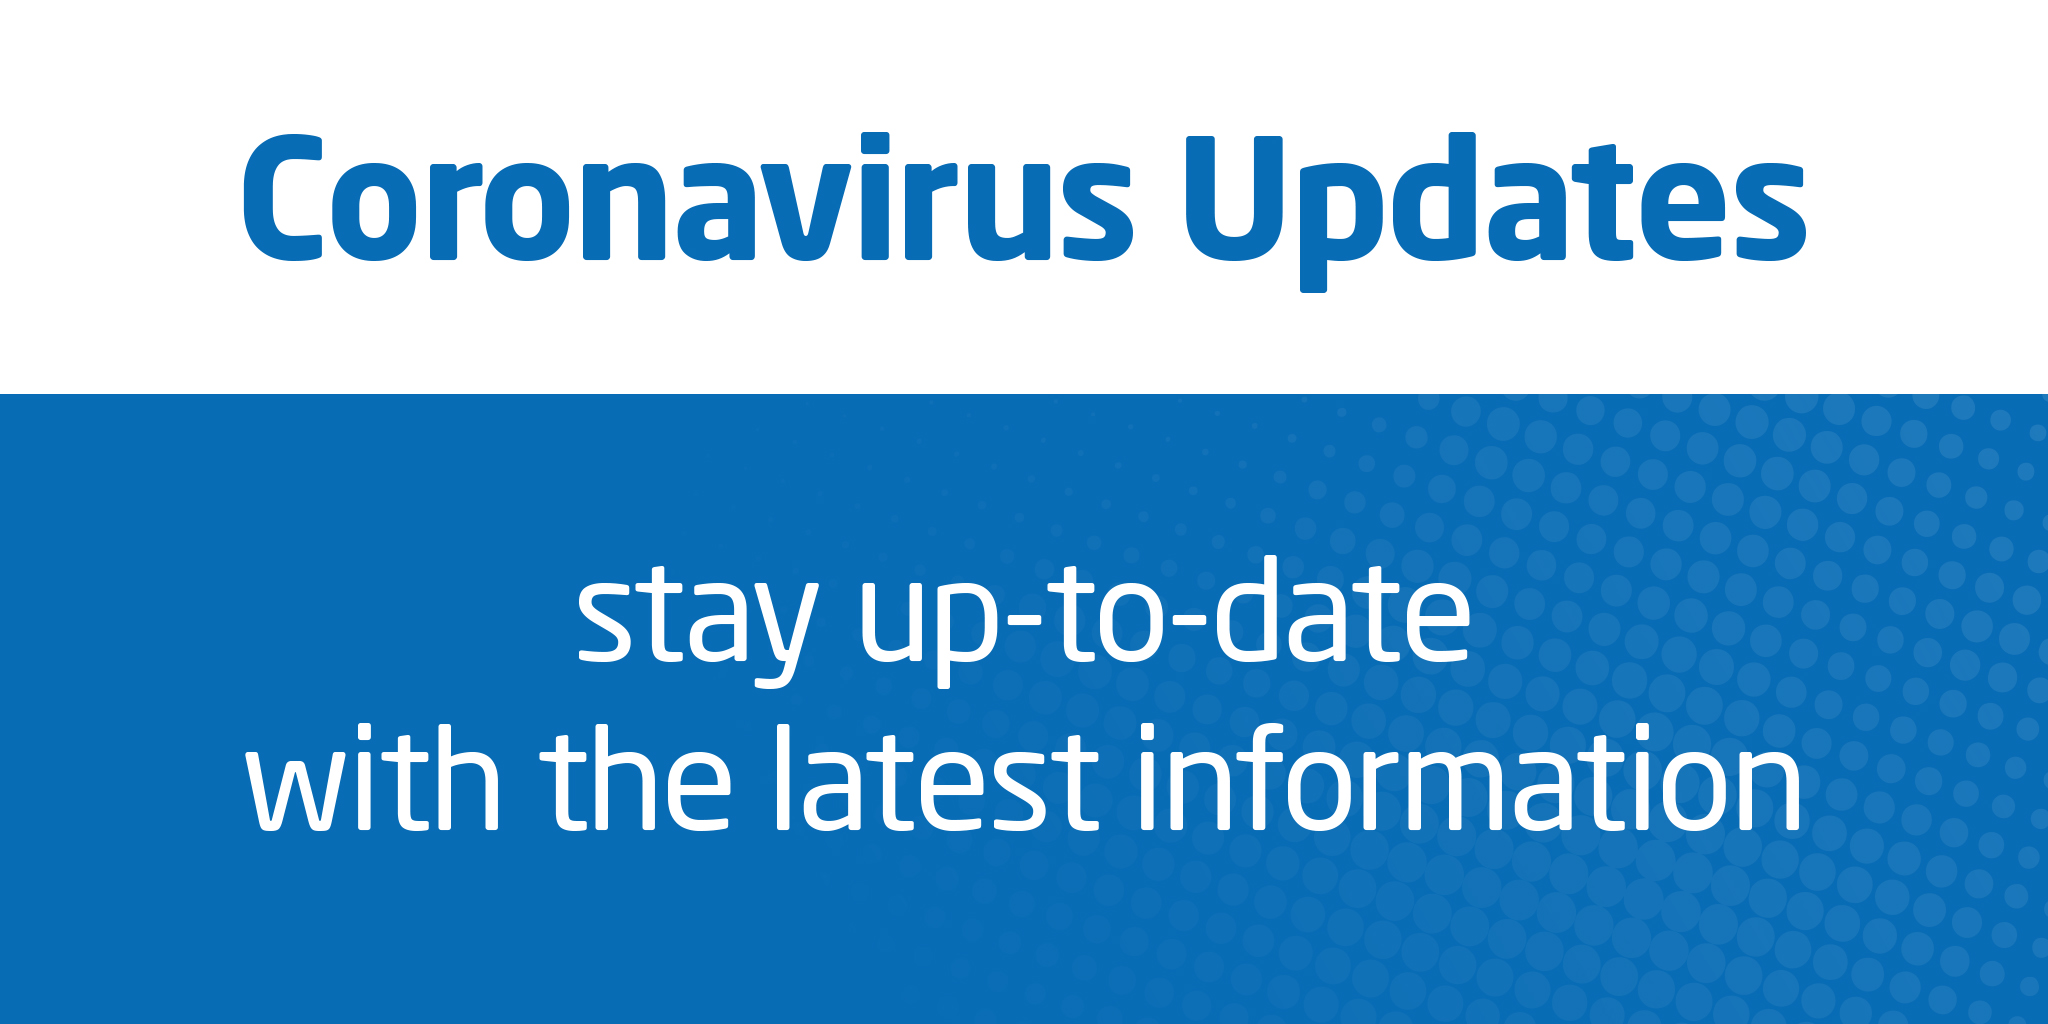 Due to the ongoing COVID-19 pandemic, the way we operate our buses has changed. Please check our dedicated page before making any journey.